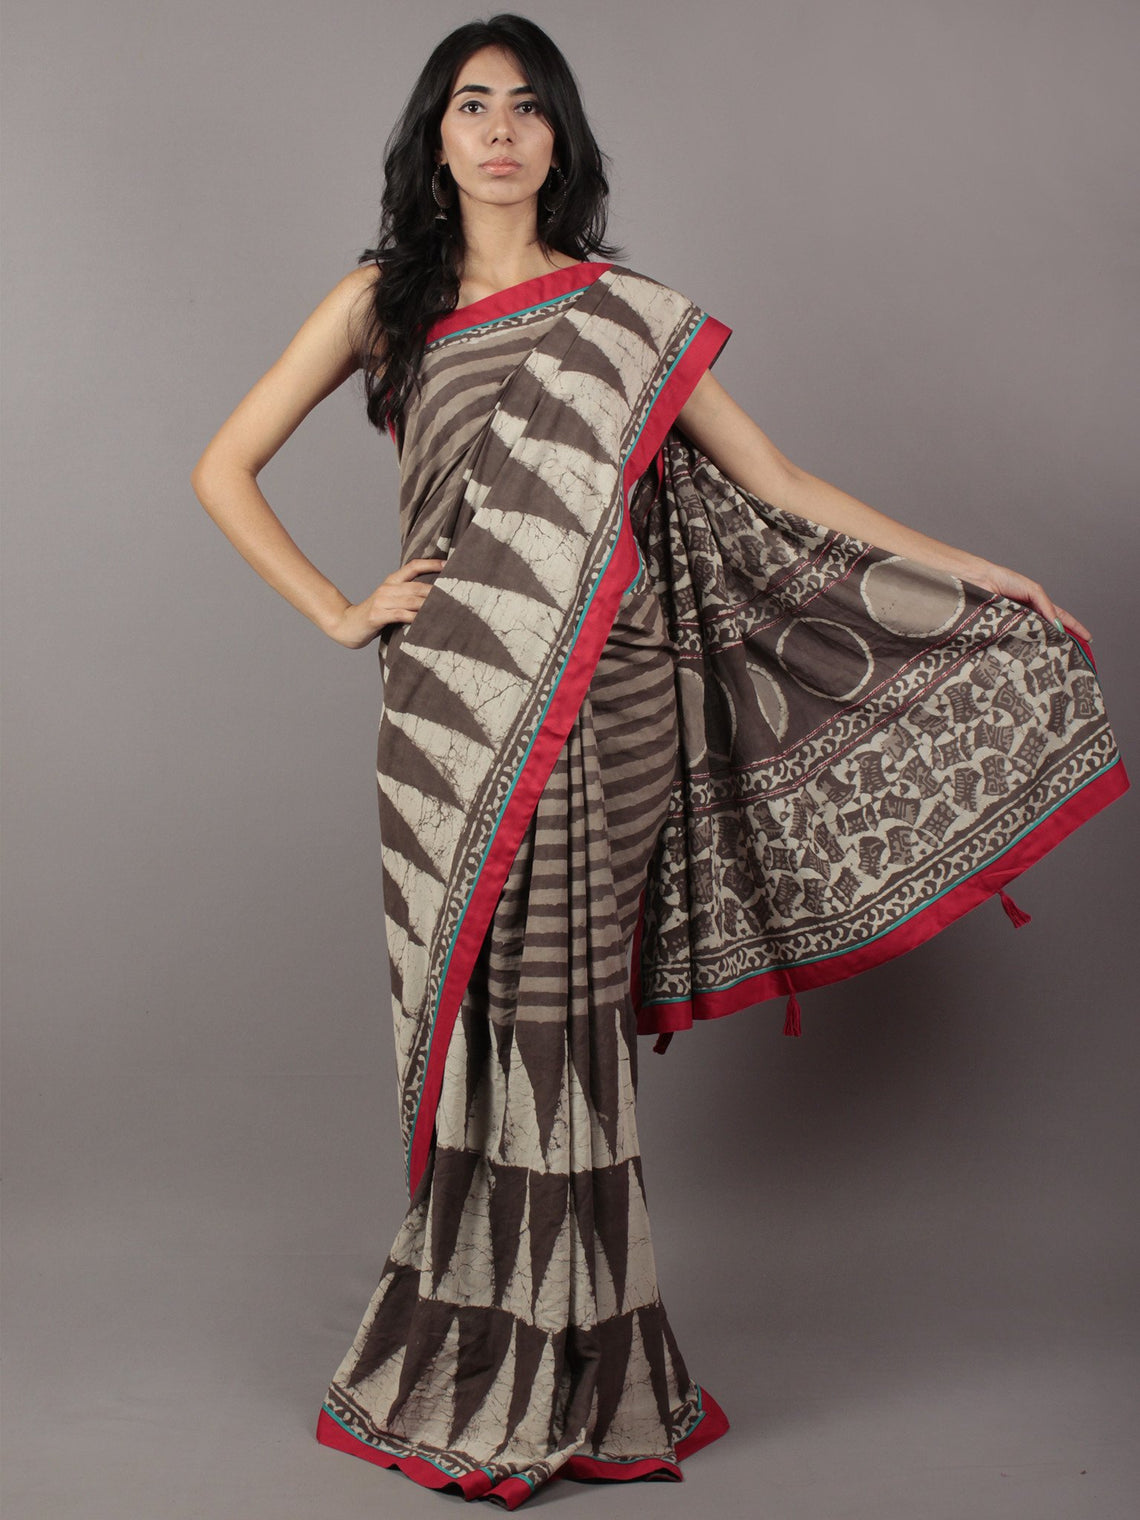 Kashish Ivory Hand Block Printed & Thread Embroidered Cotton Saree With Red & Sea Green Border & Tassels - S031701773